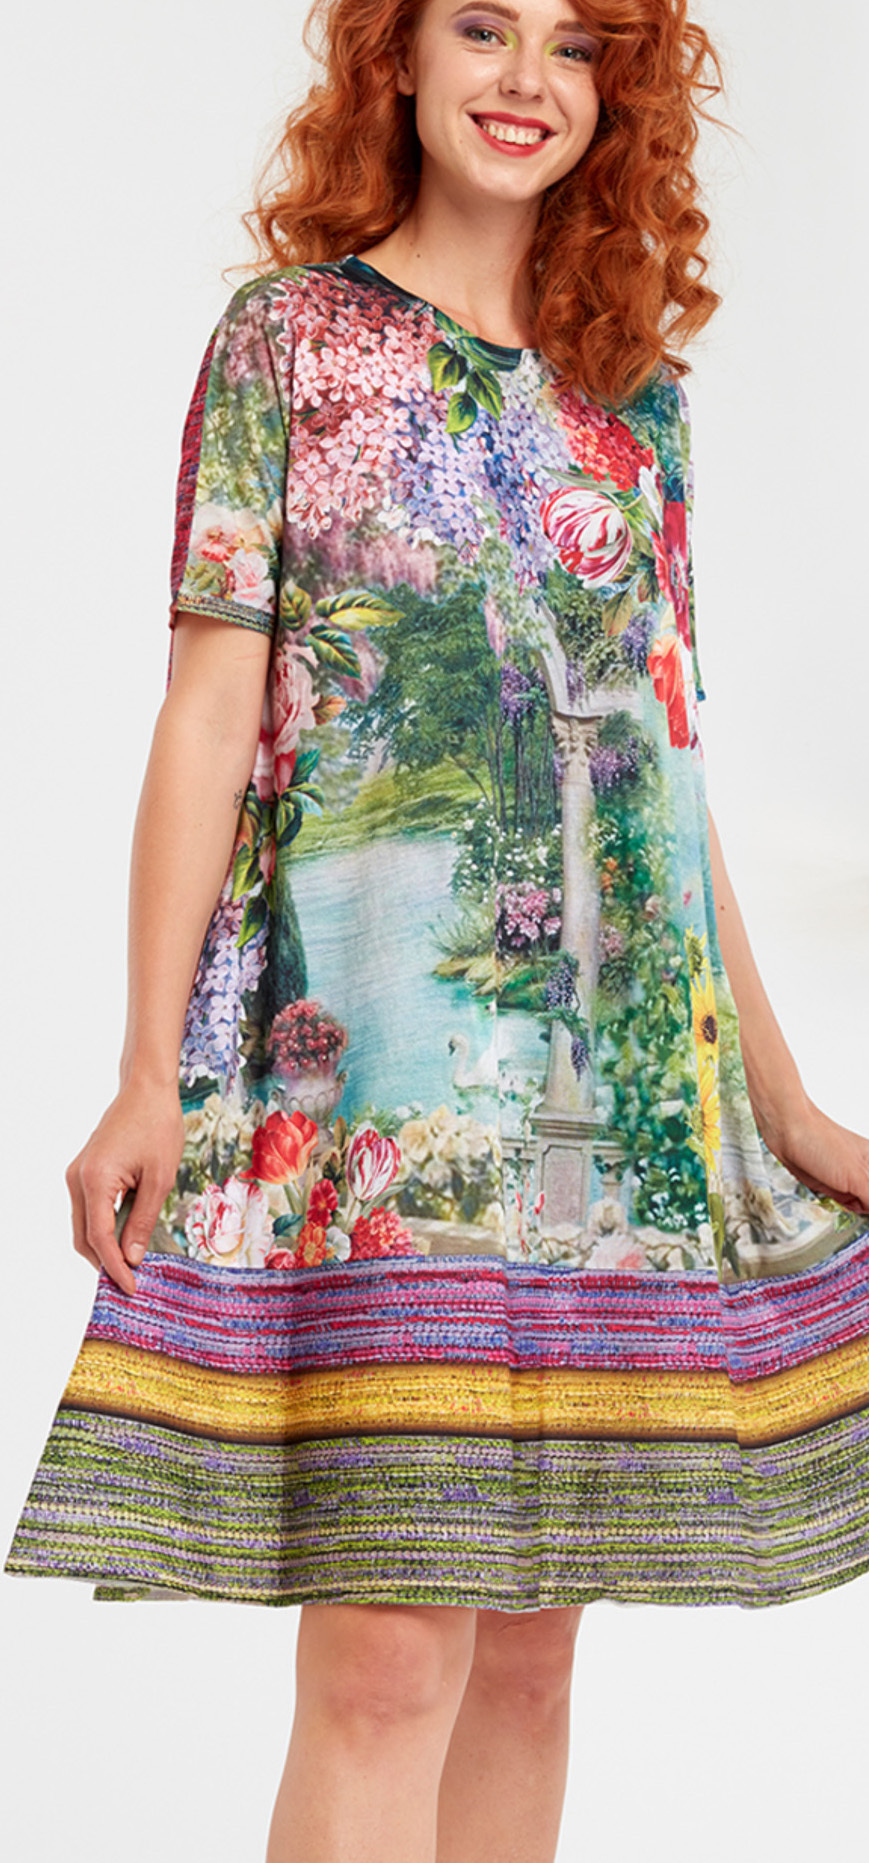 IPNG: In Paradiso Cherry Carnation Fairytale Comfort Dress IPNG_IPYDW-092